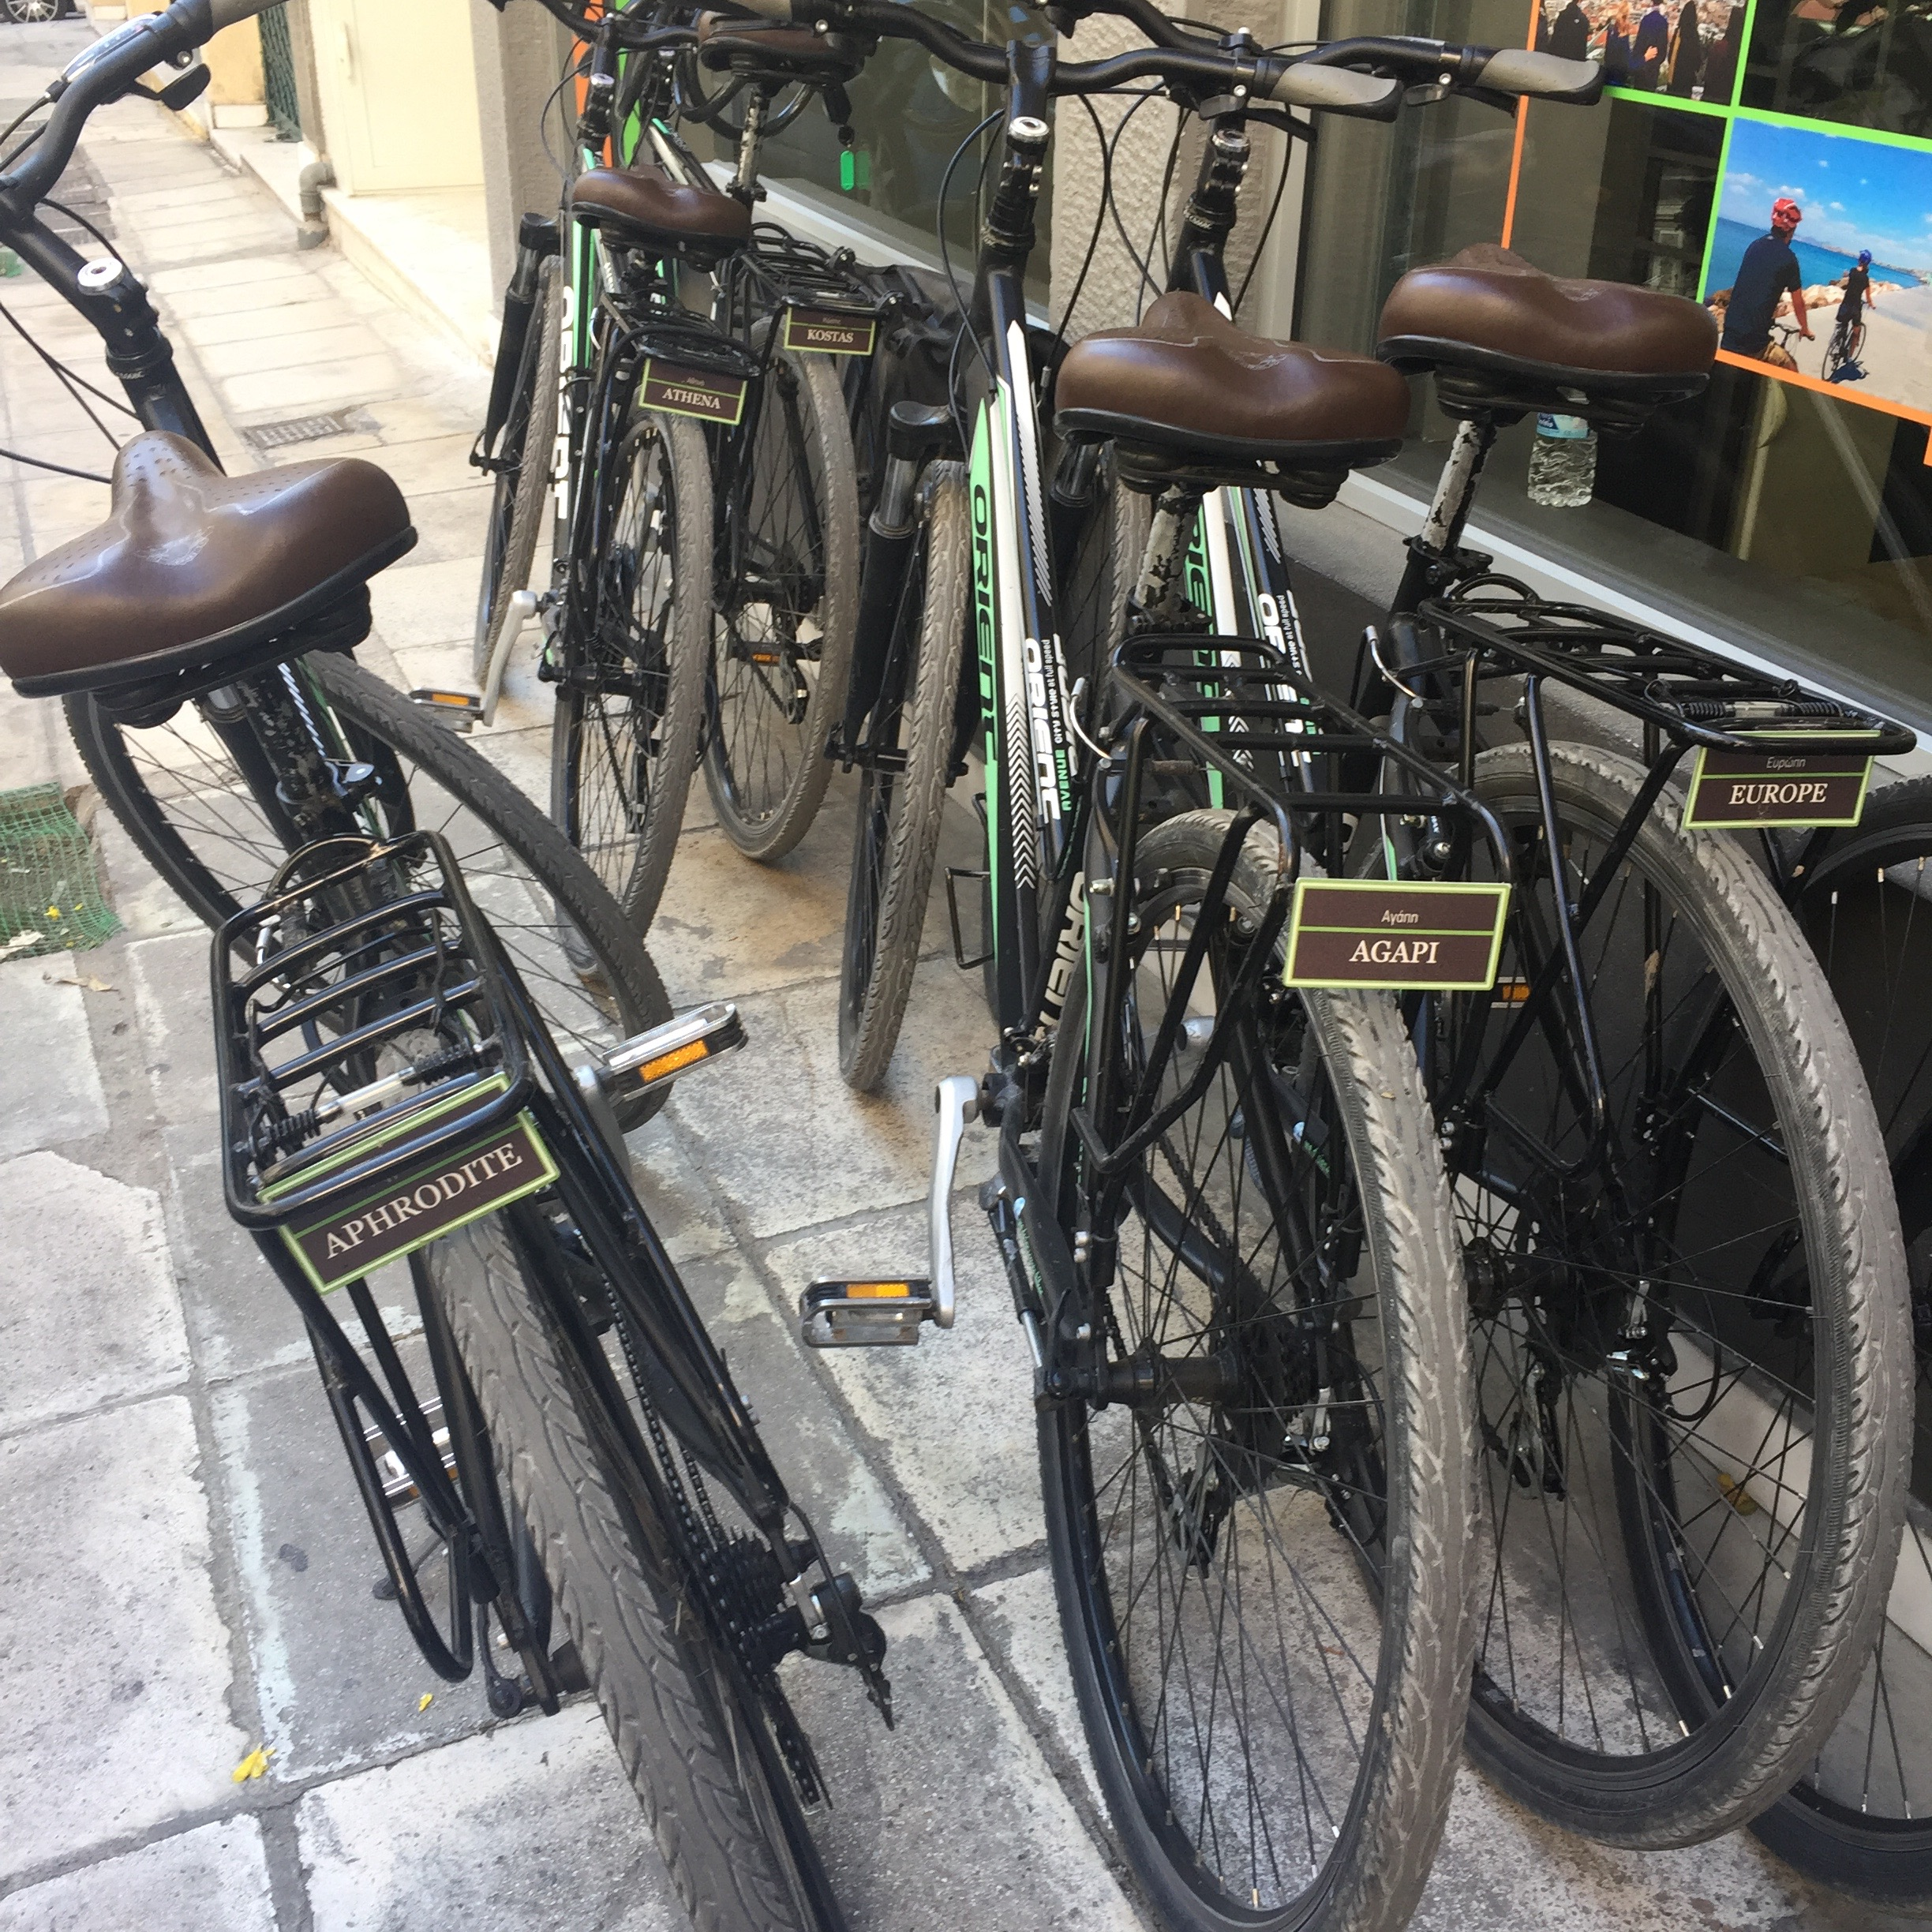 Bike rental is an excellent option when traveling to keep things cheap…and healthy!